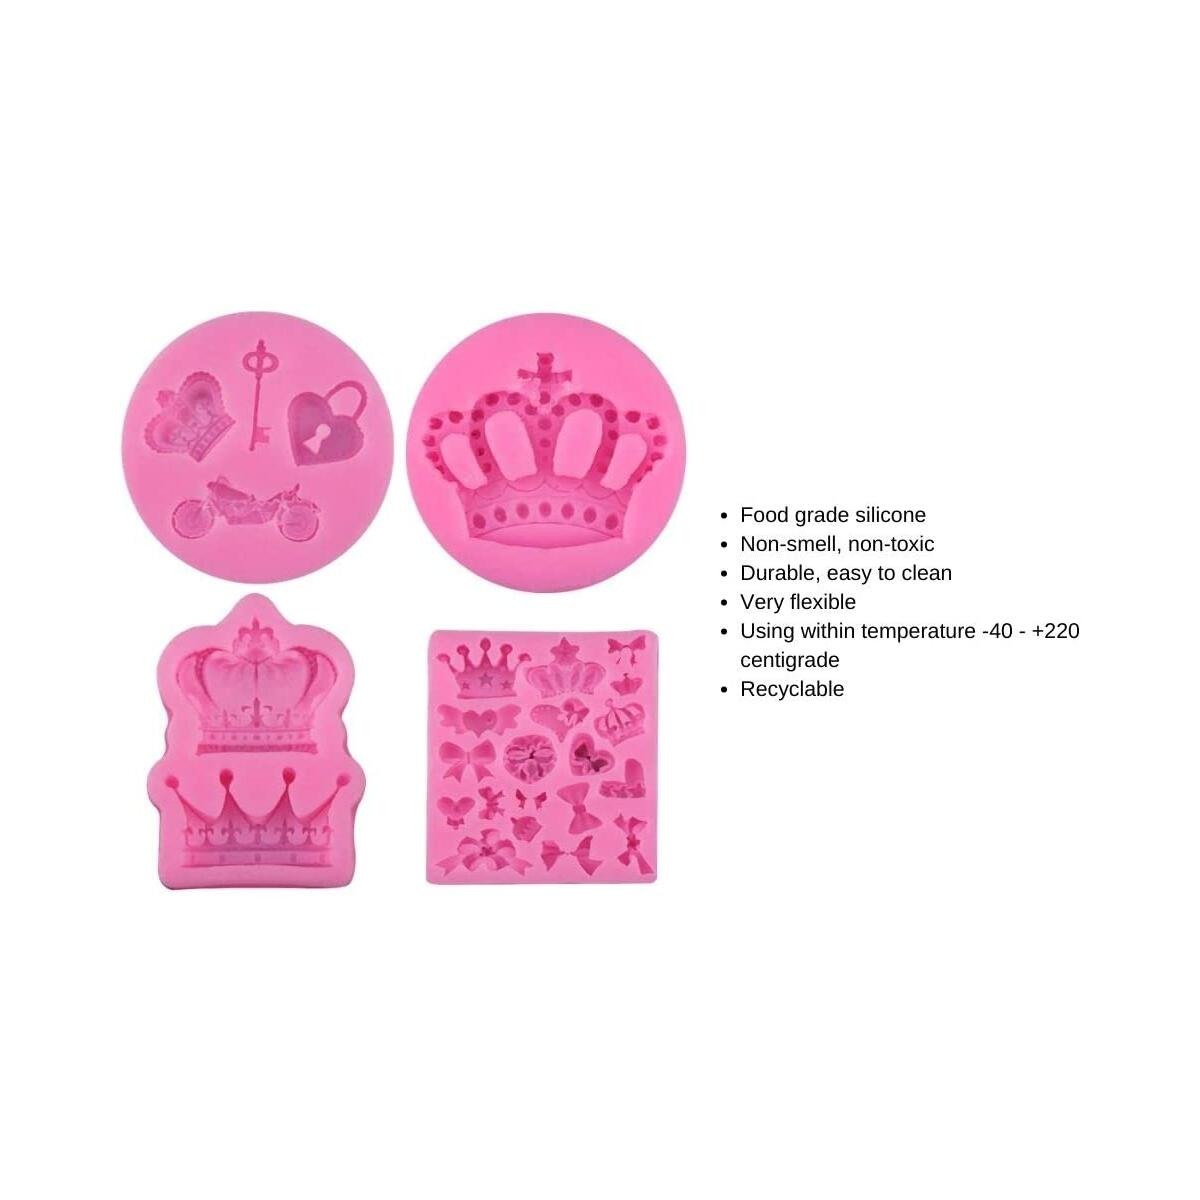 Silicon Crown Fondant Candy Silicone Molds Bows Crown Heart Mold for Sugarcraft, Cake Decoration, Cupcake Topper, Chocolate, Pastry, Cookie Decor, Clay, Epoxy Resin, Crafting Projects (4 Pack)